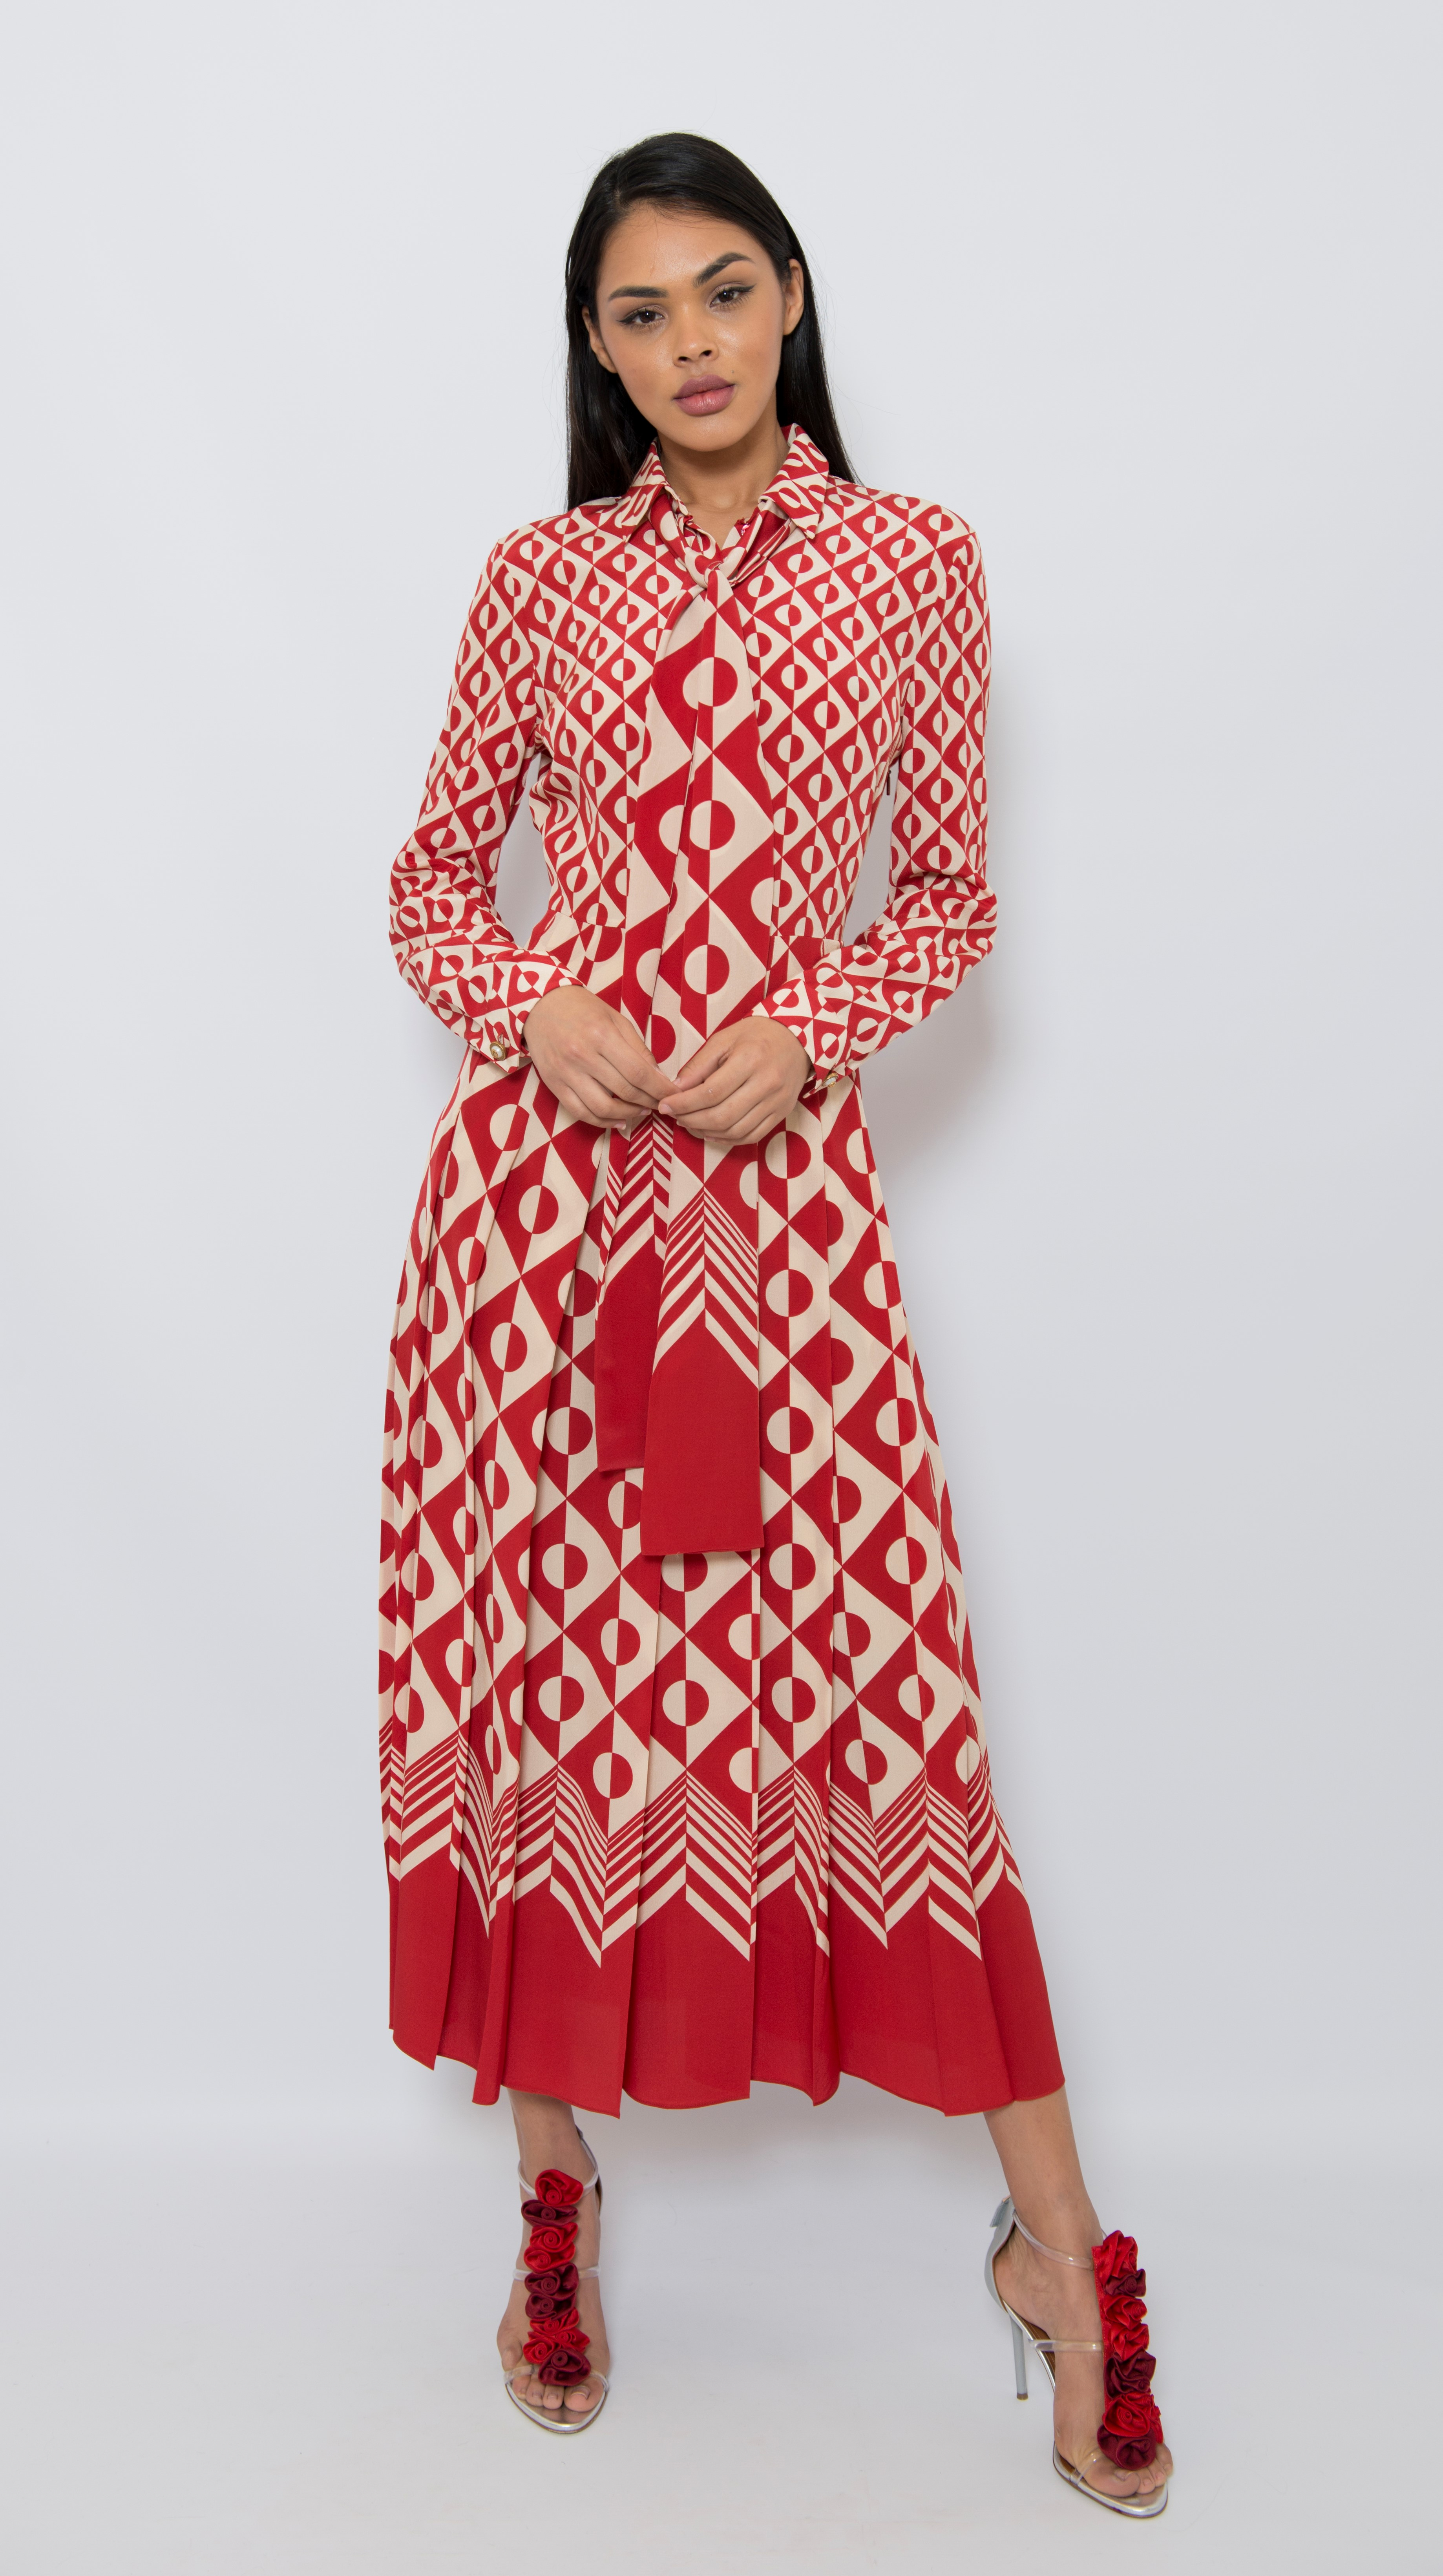 Gucci Silk Patterned Pleated Dress